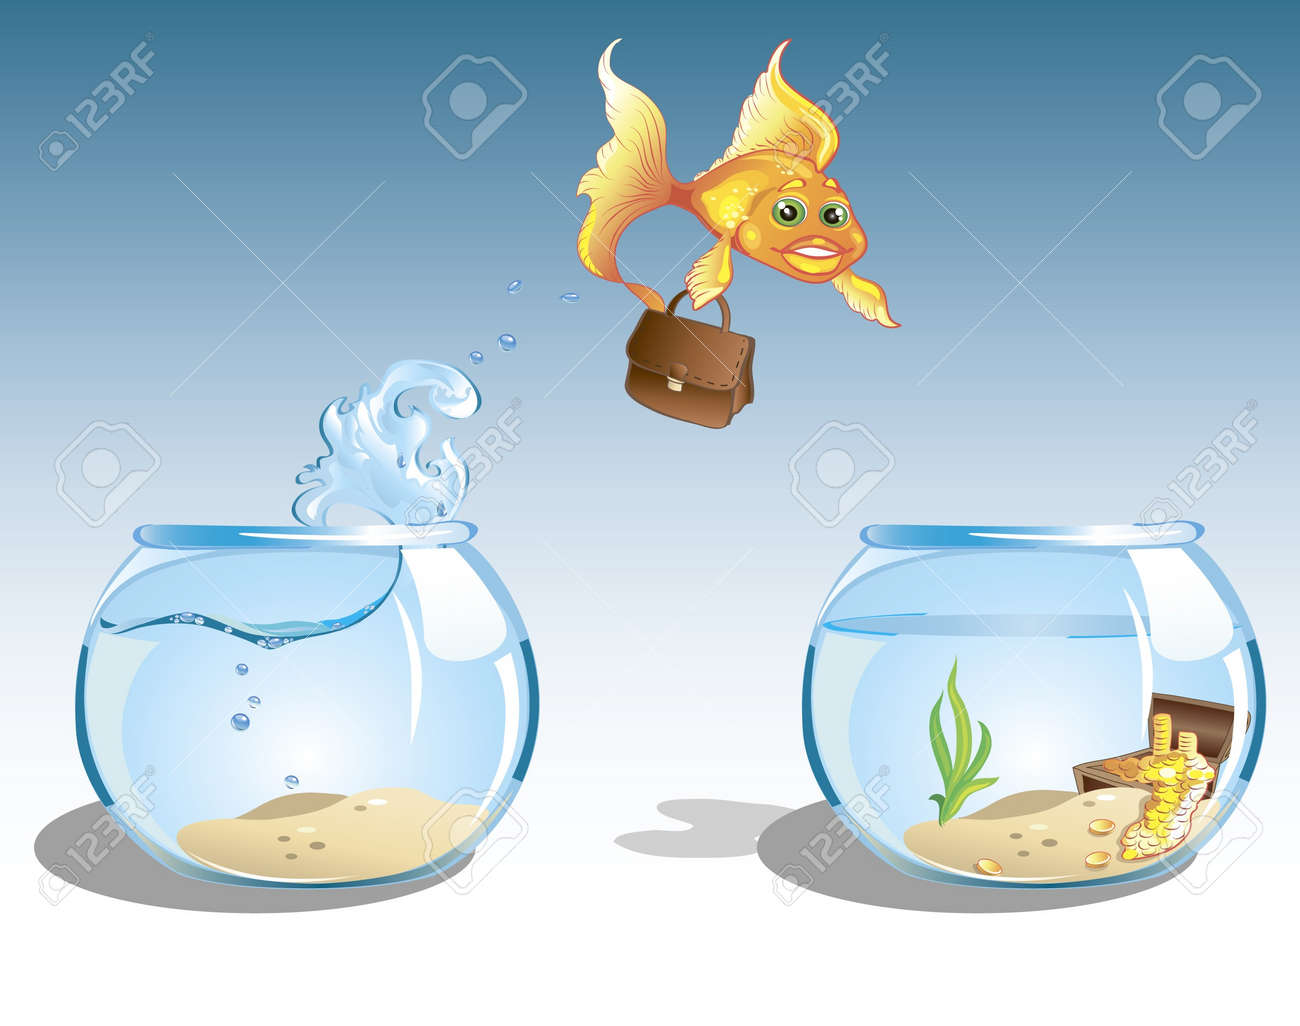 cute cartoon business goldfish with case jumping to other bowl with chest full of money Stock Vector - 10040351